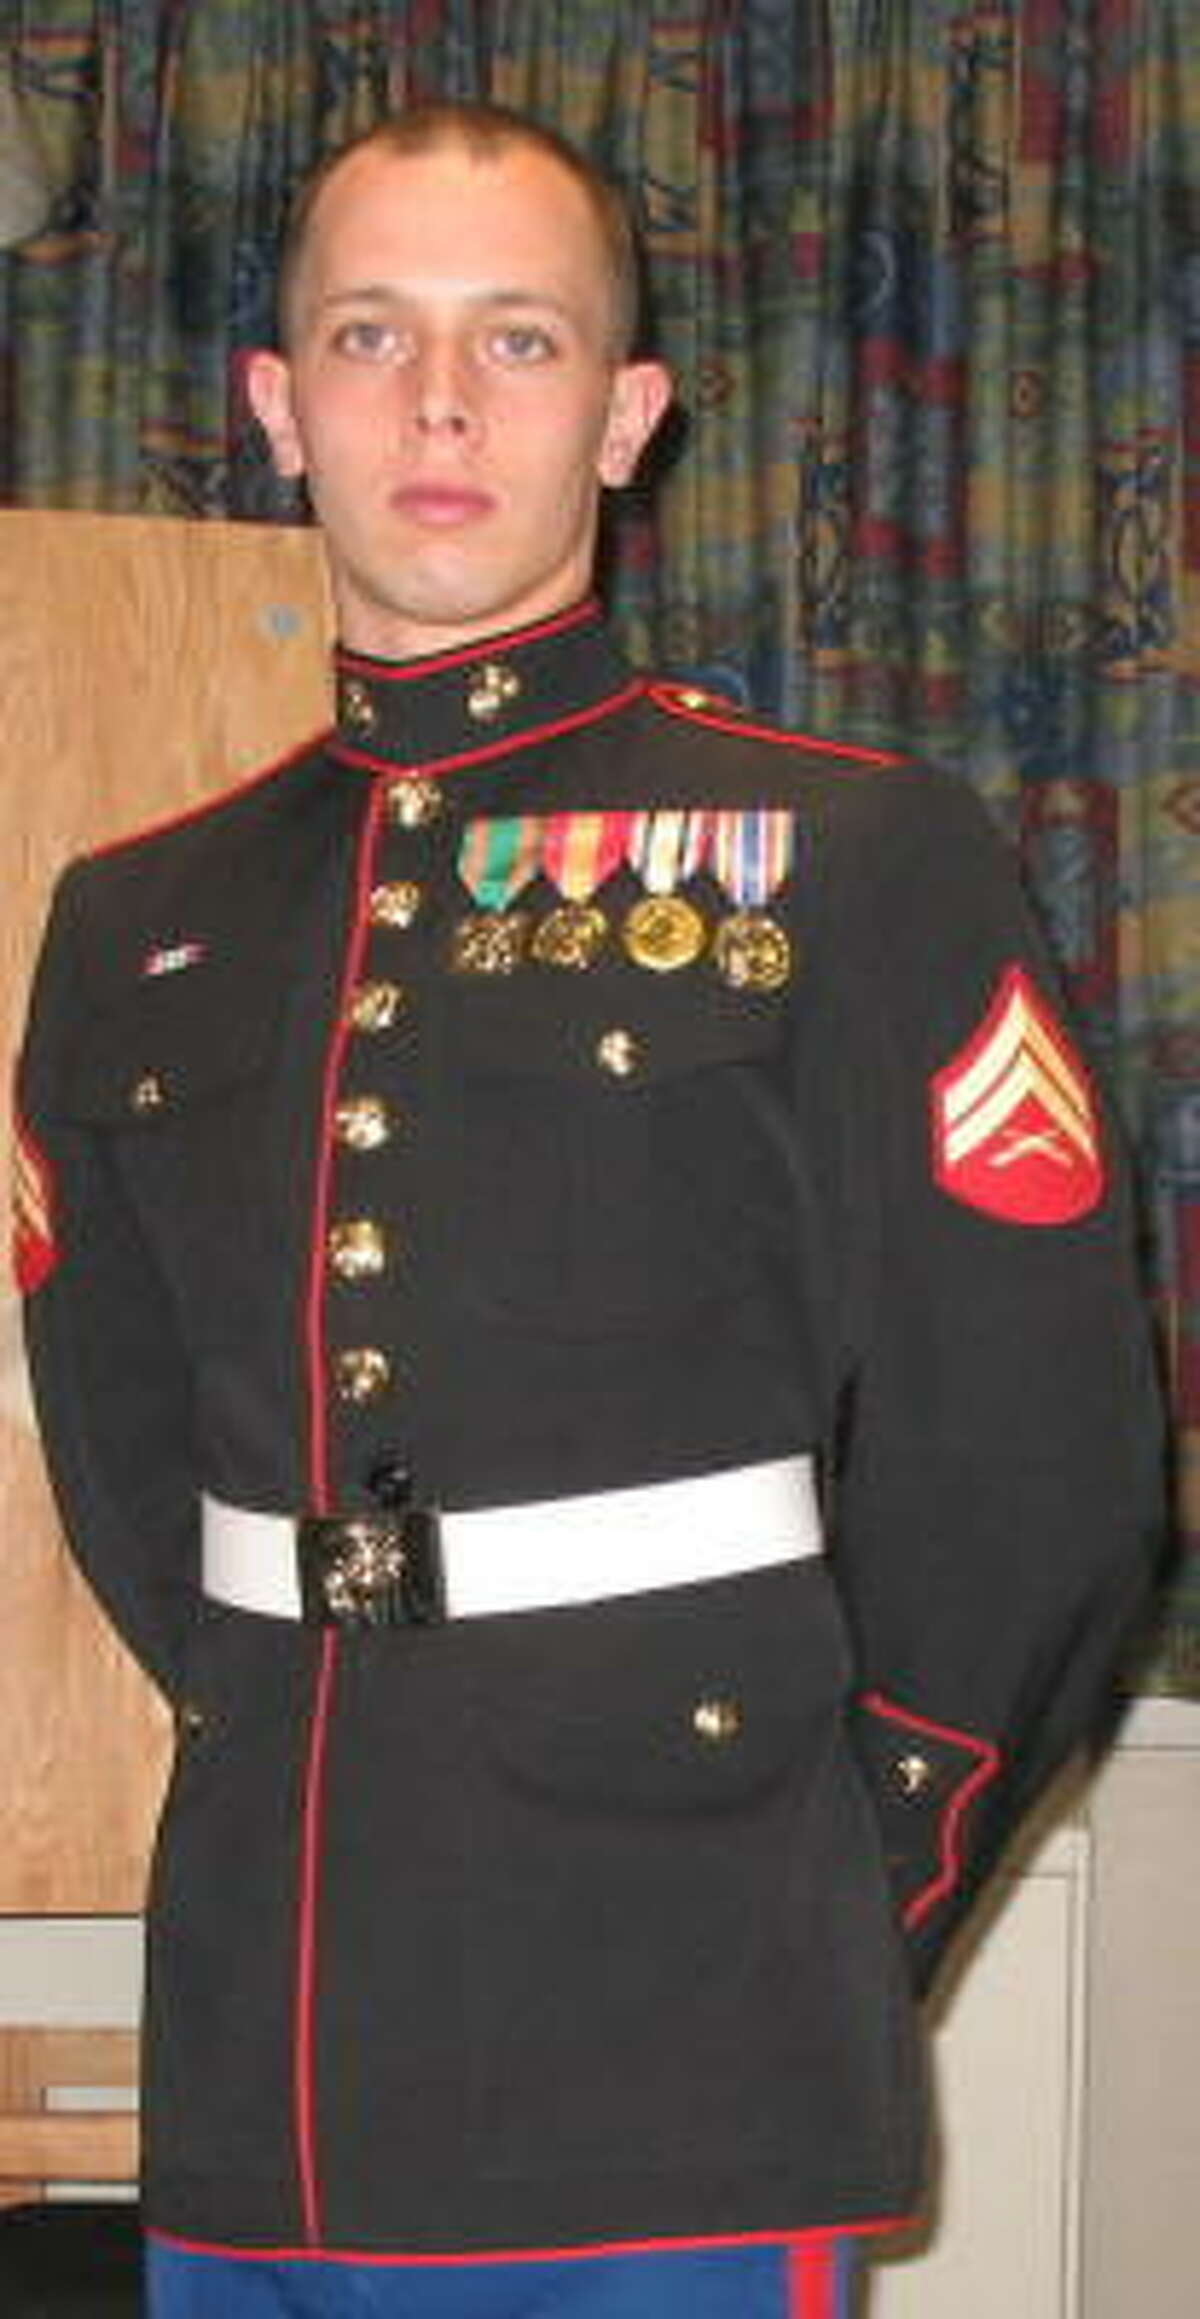 PRIDE OF HIS DAD'S LIFE: David Stidman survived two deployments to Iraq and one to Afghanistan, but died in an Aug. 2 traffic accident near Rosenberg.